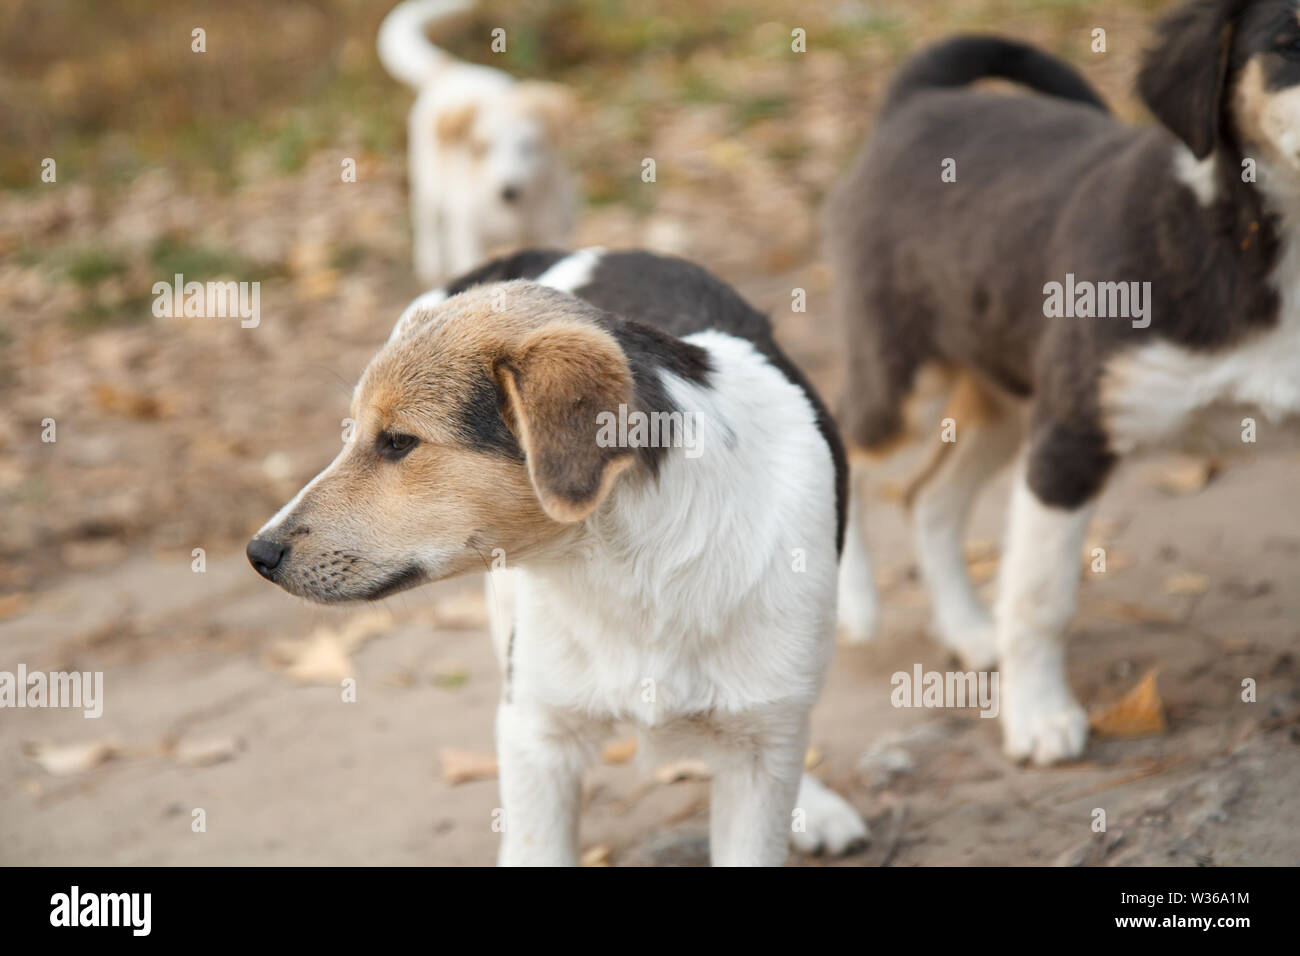 Homeless little dog looking at something on the road in autumn with other ones on the background. Shallow depth of field. - Stock Image